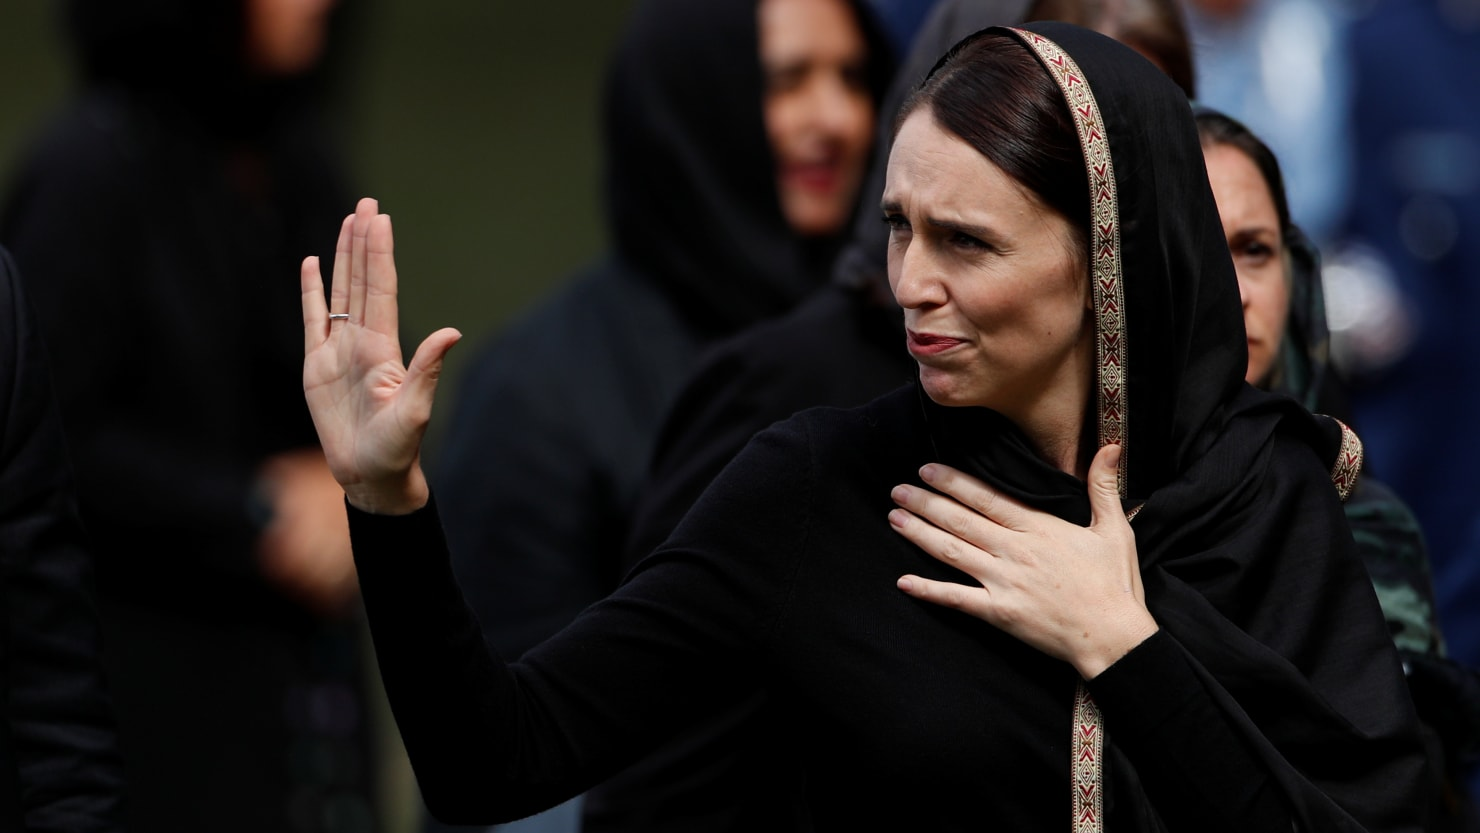 New Zealand to Hold Inquiry Into Roles of Spies and Guns in Mosque Attacks